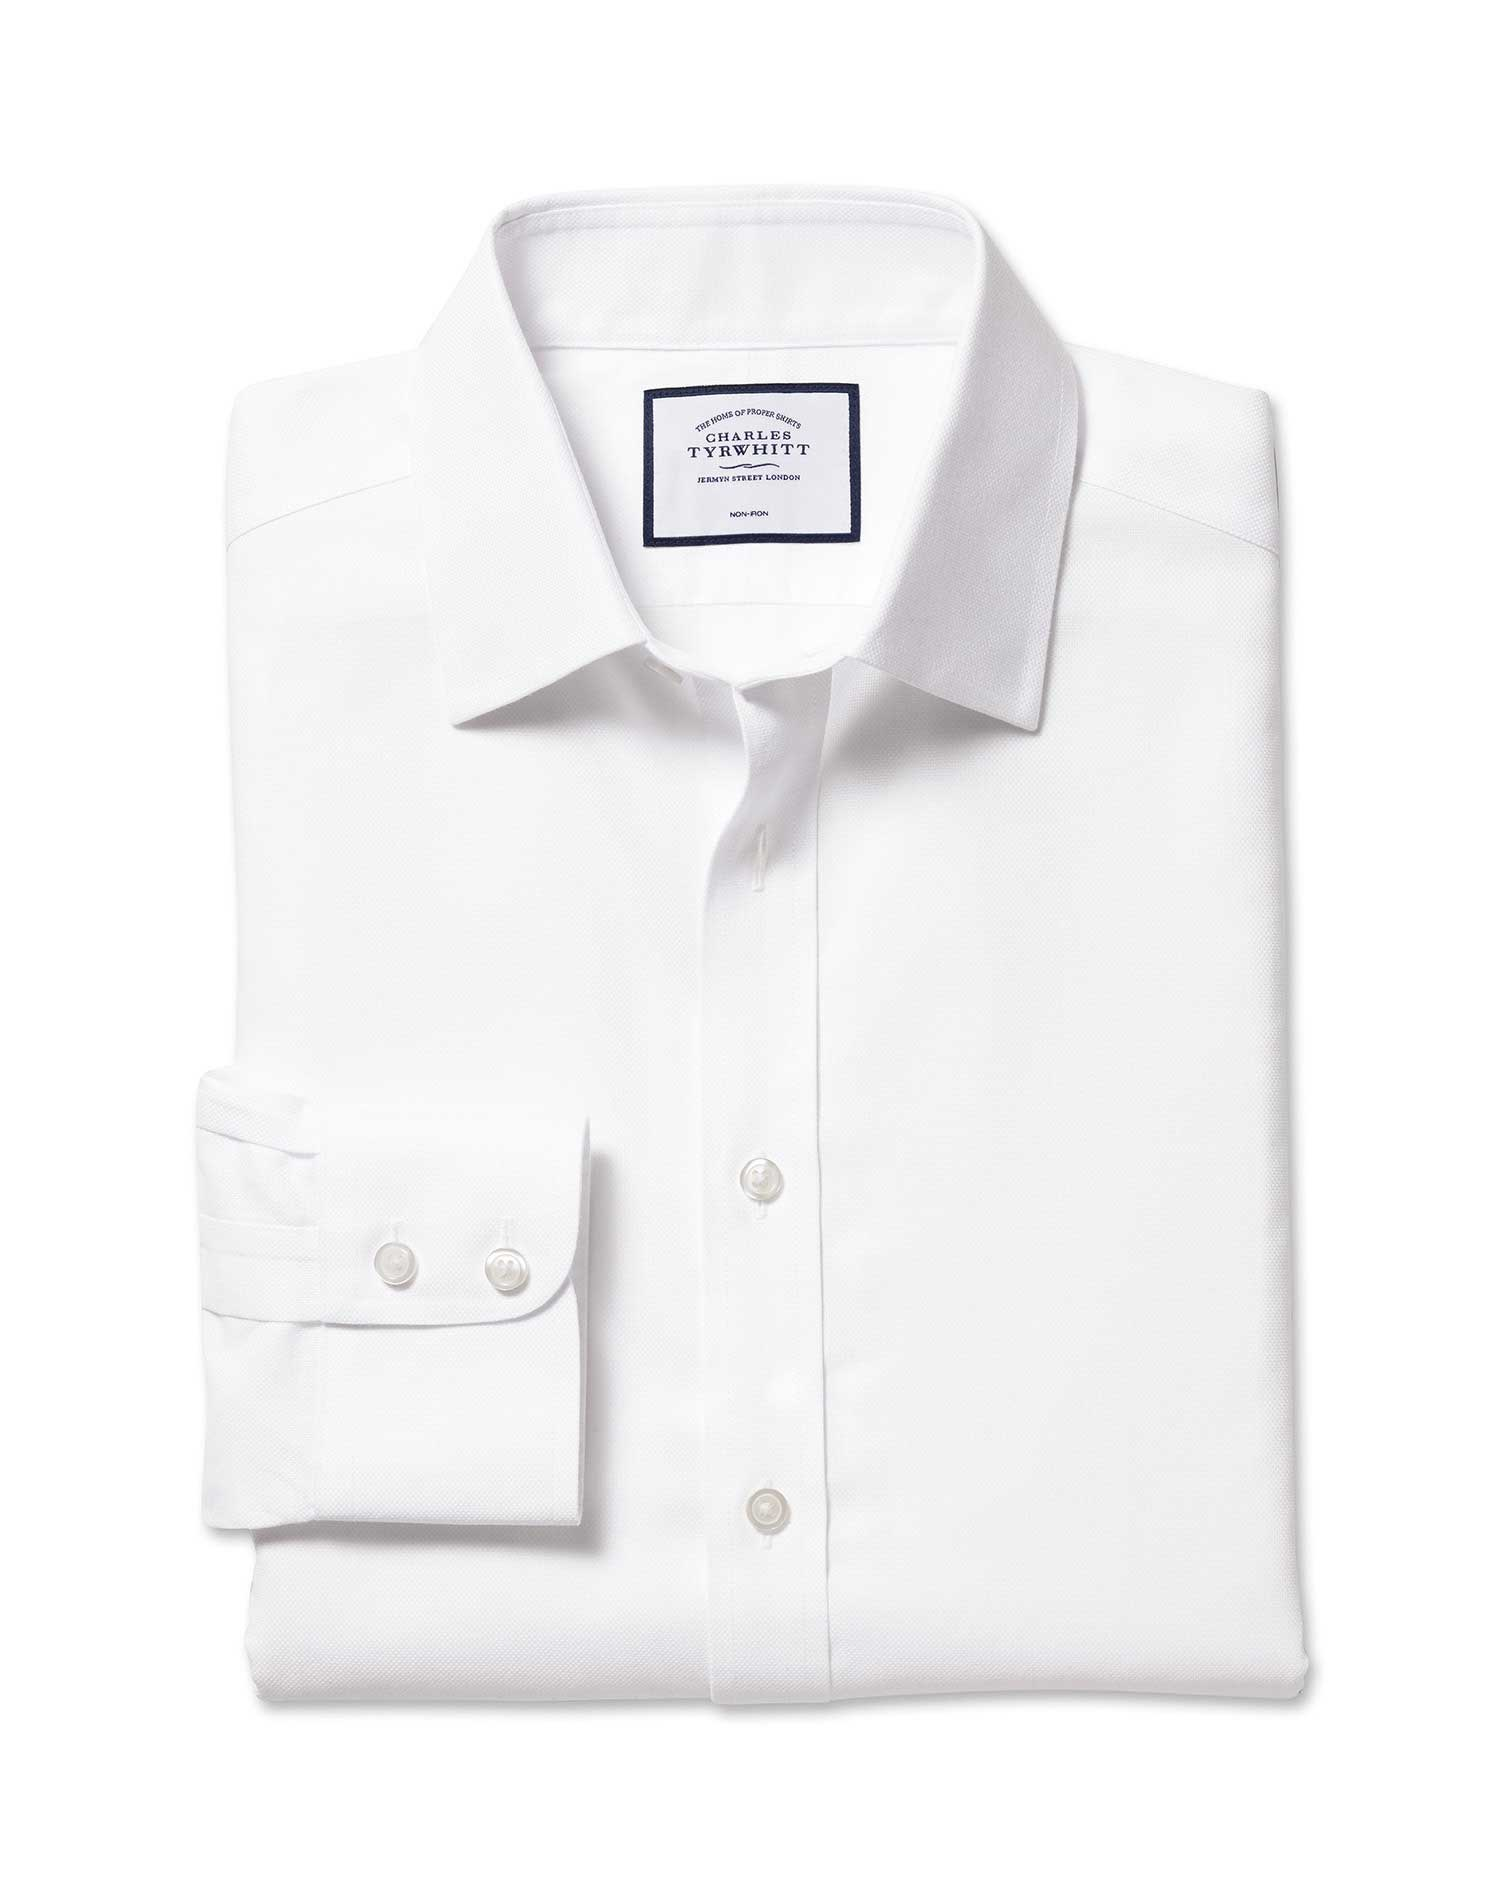 Slim Fit Non-Iron Royal Panama White Cotton Formal Shirt Double Cuff Size 17.5/35 by Charles Tyrwhit